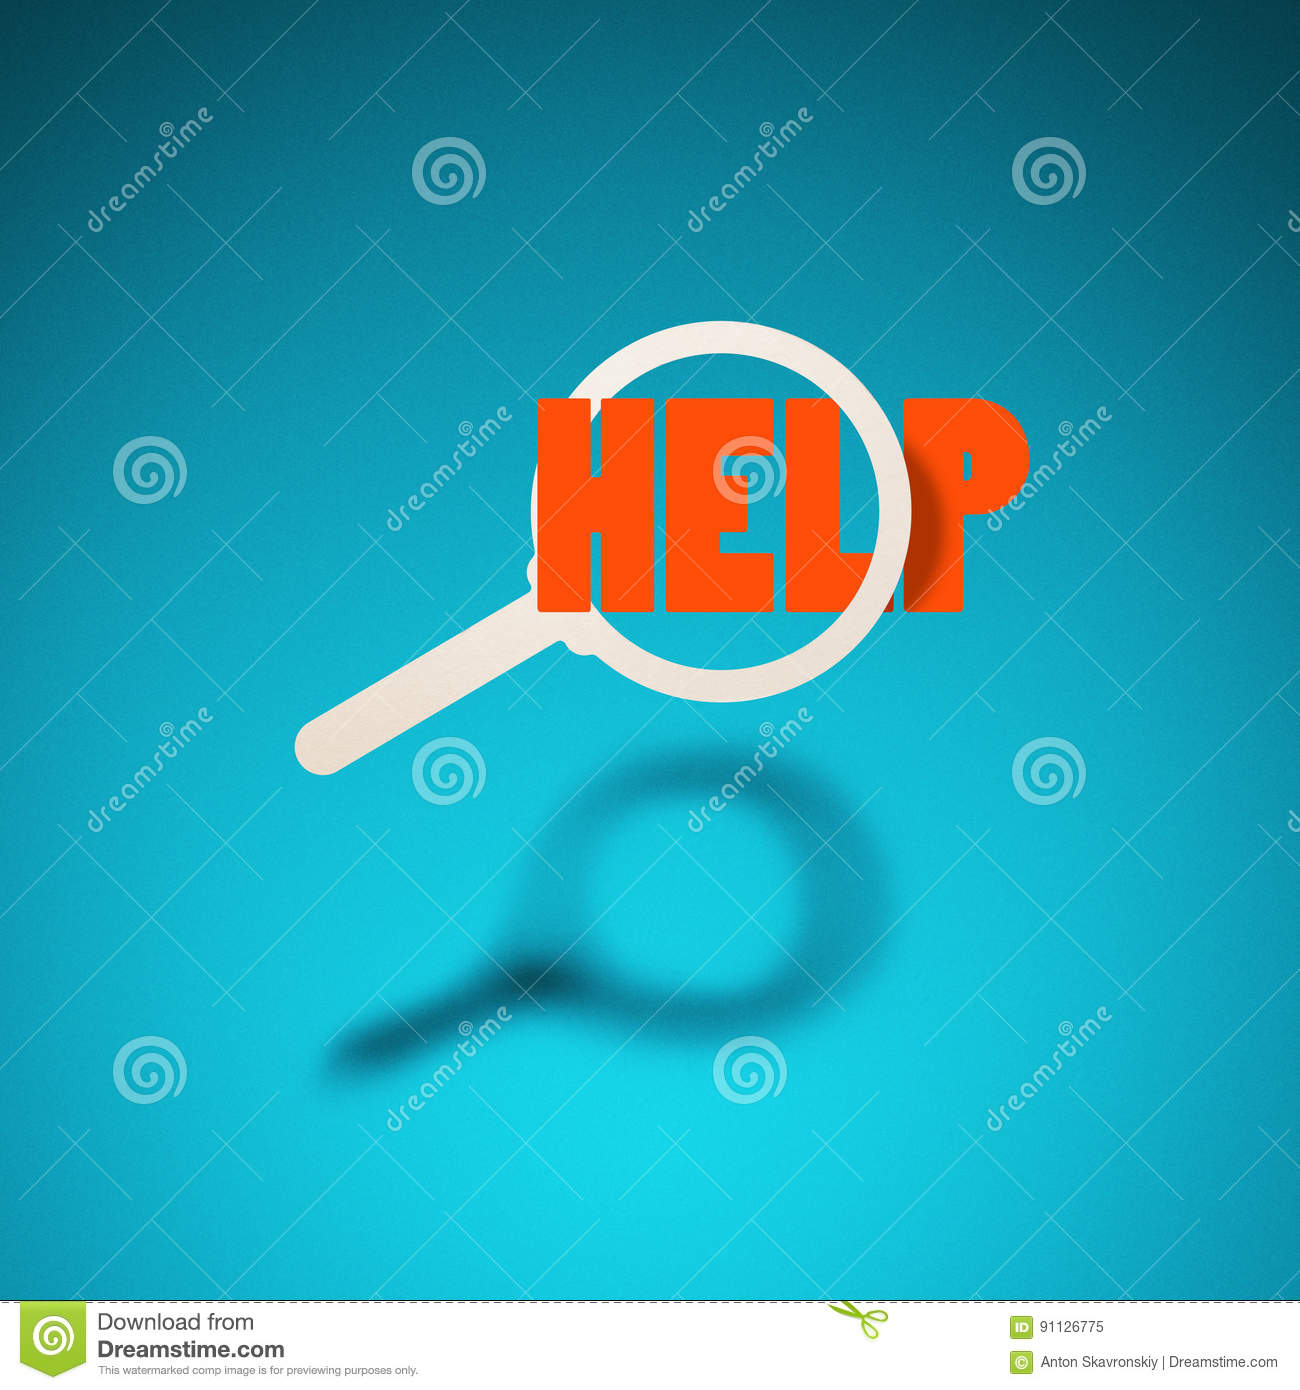 Pleasings Messages: Find Help Stock Illustration. Image Of Emergency, Help